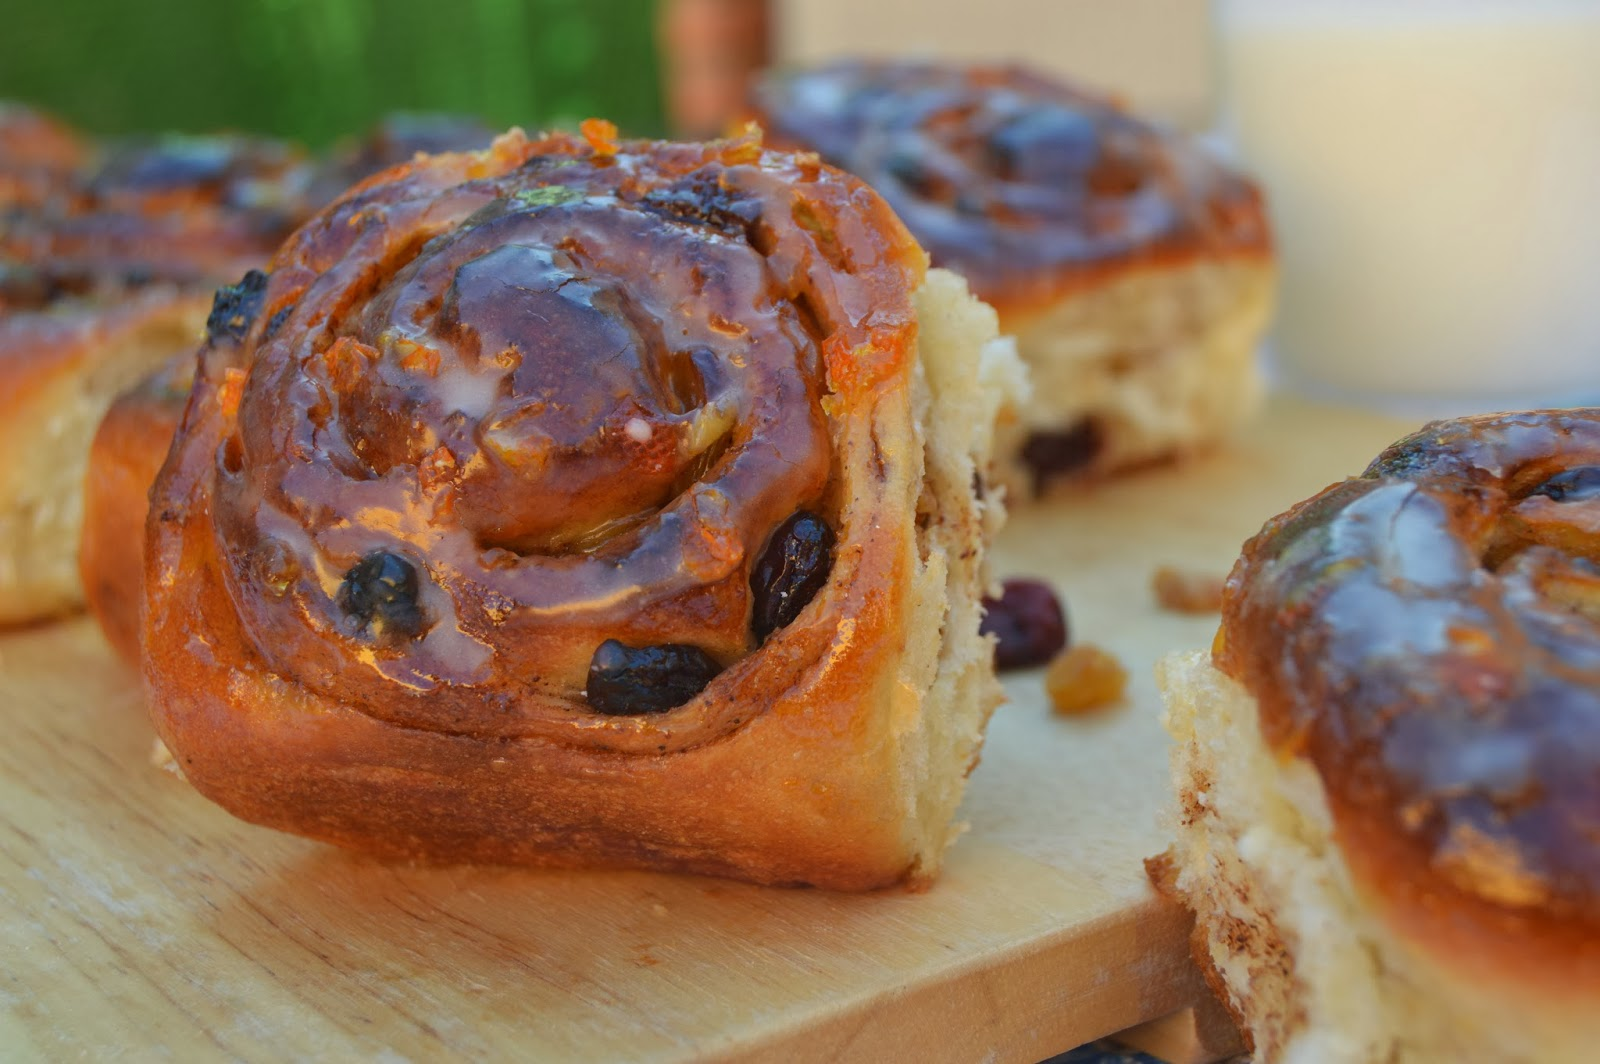 ... buns ham and cheese buns chelsea buns shopzed chelsea buns recipes